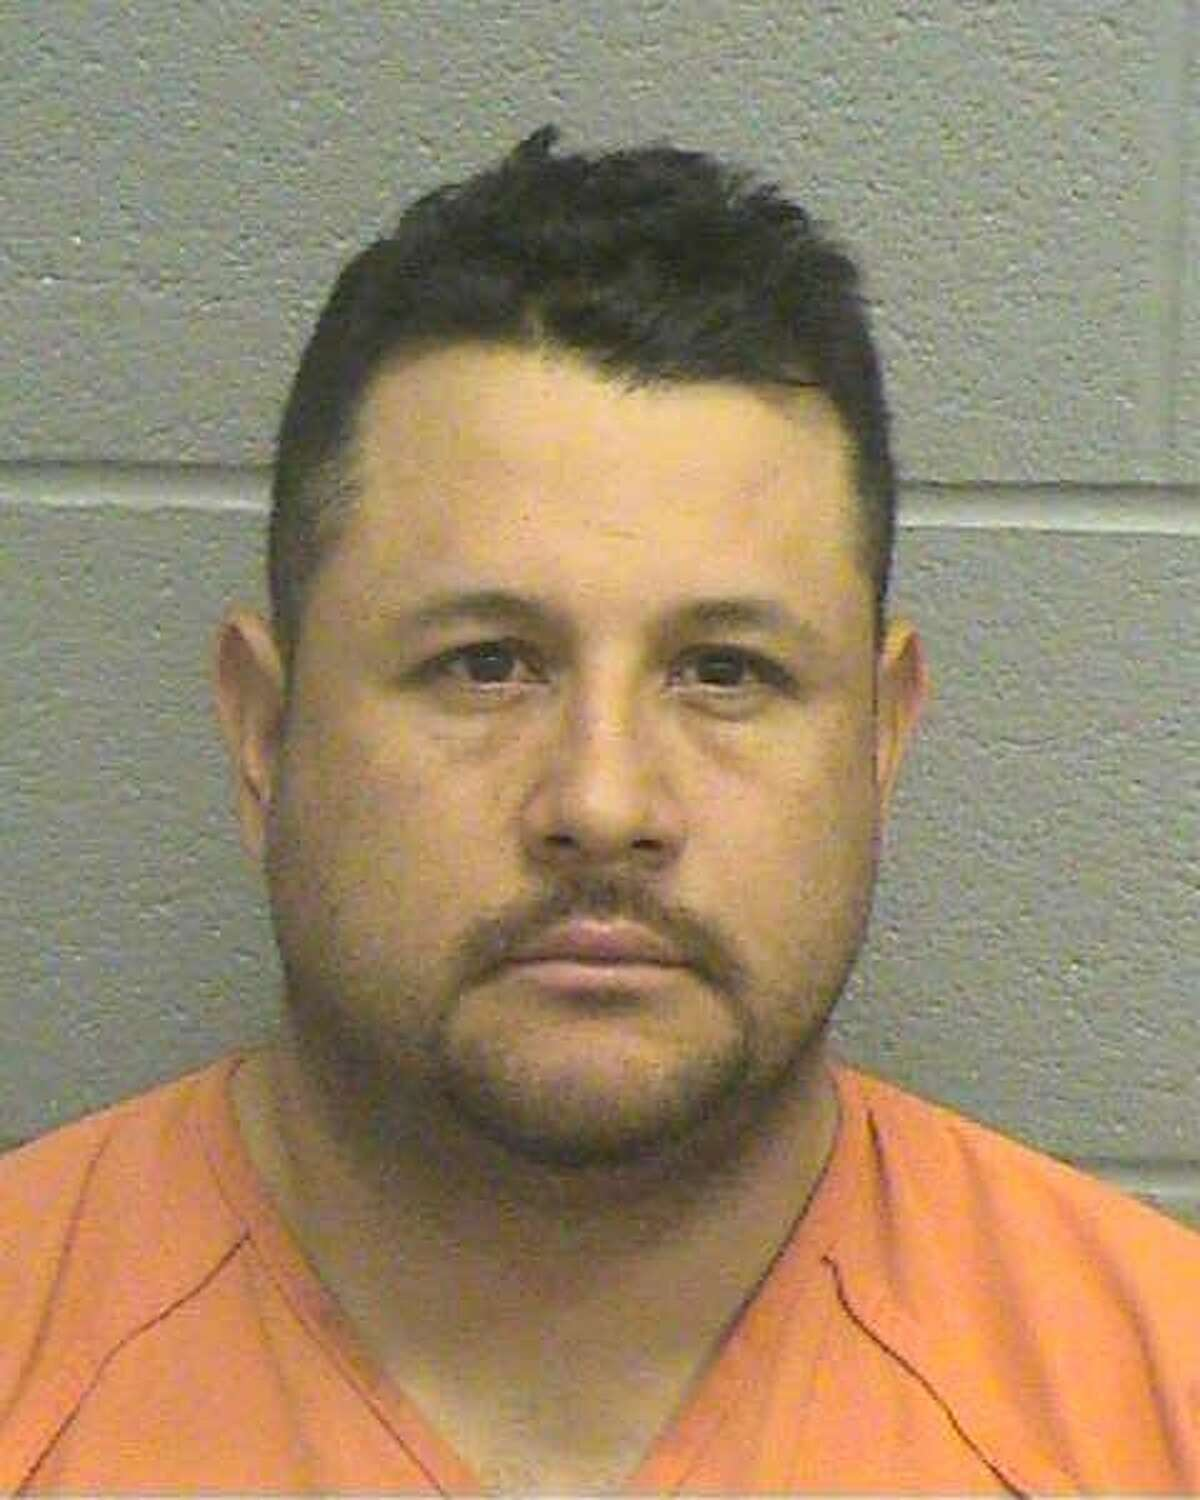 Jose Reyes Baeza has been arrested by the Midland County Sheriff's Office as part of an alleged Texas cockfighting ring. (Source: Midland County Sheriff's Office)